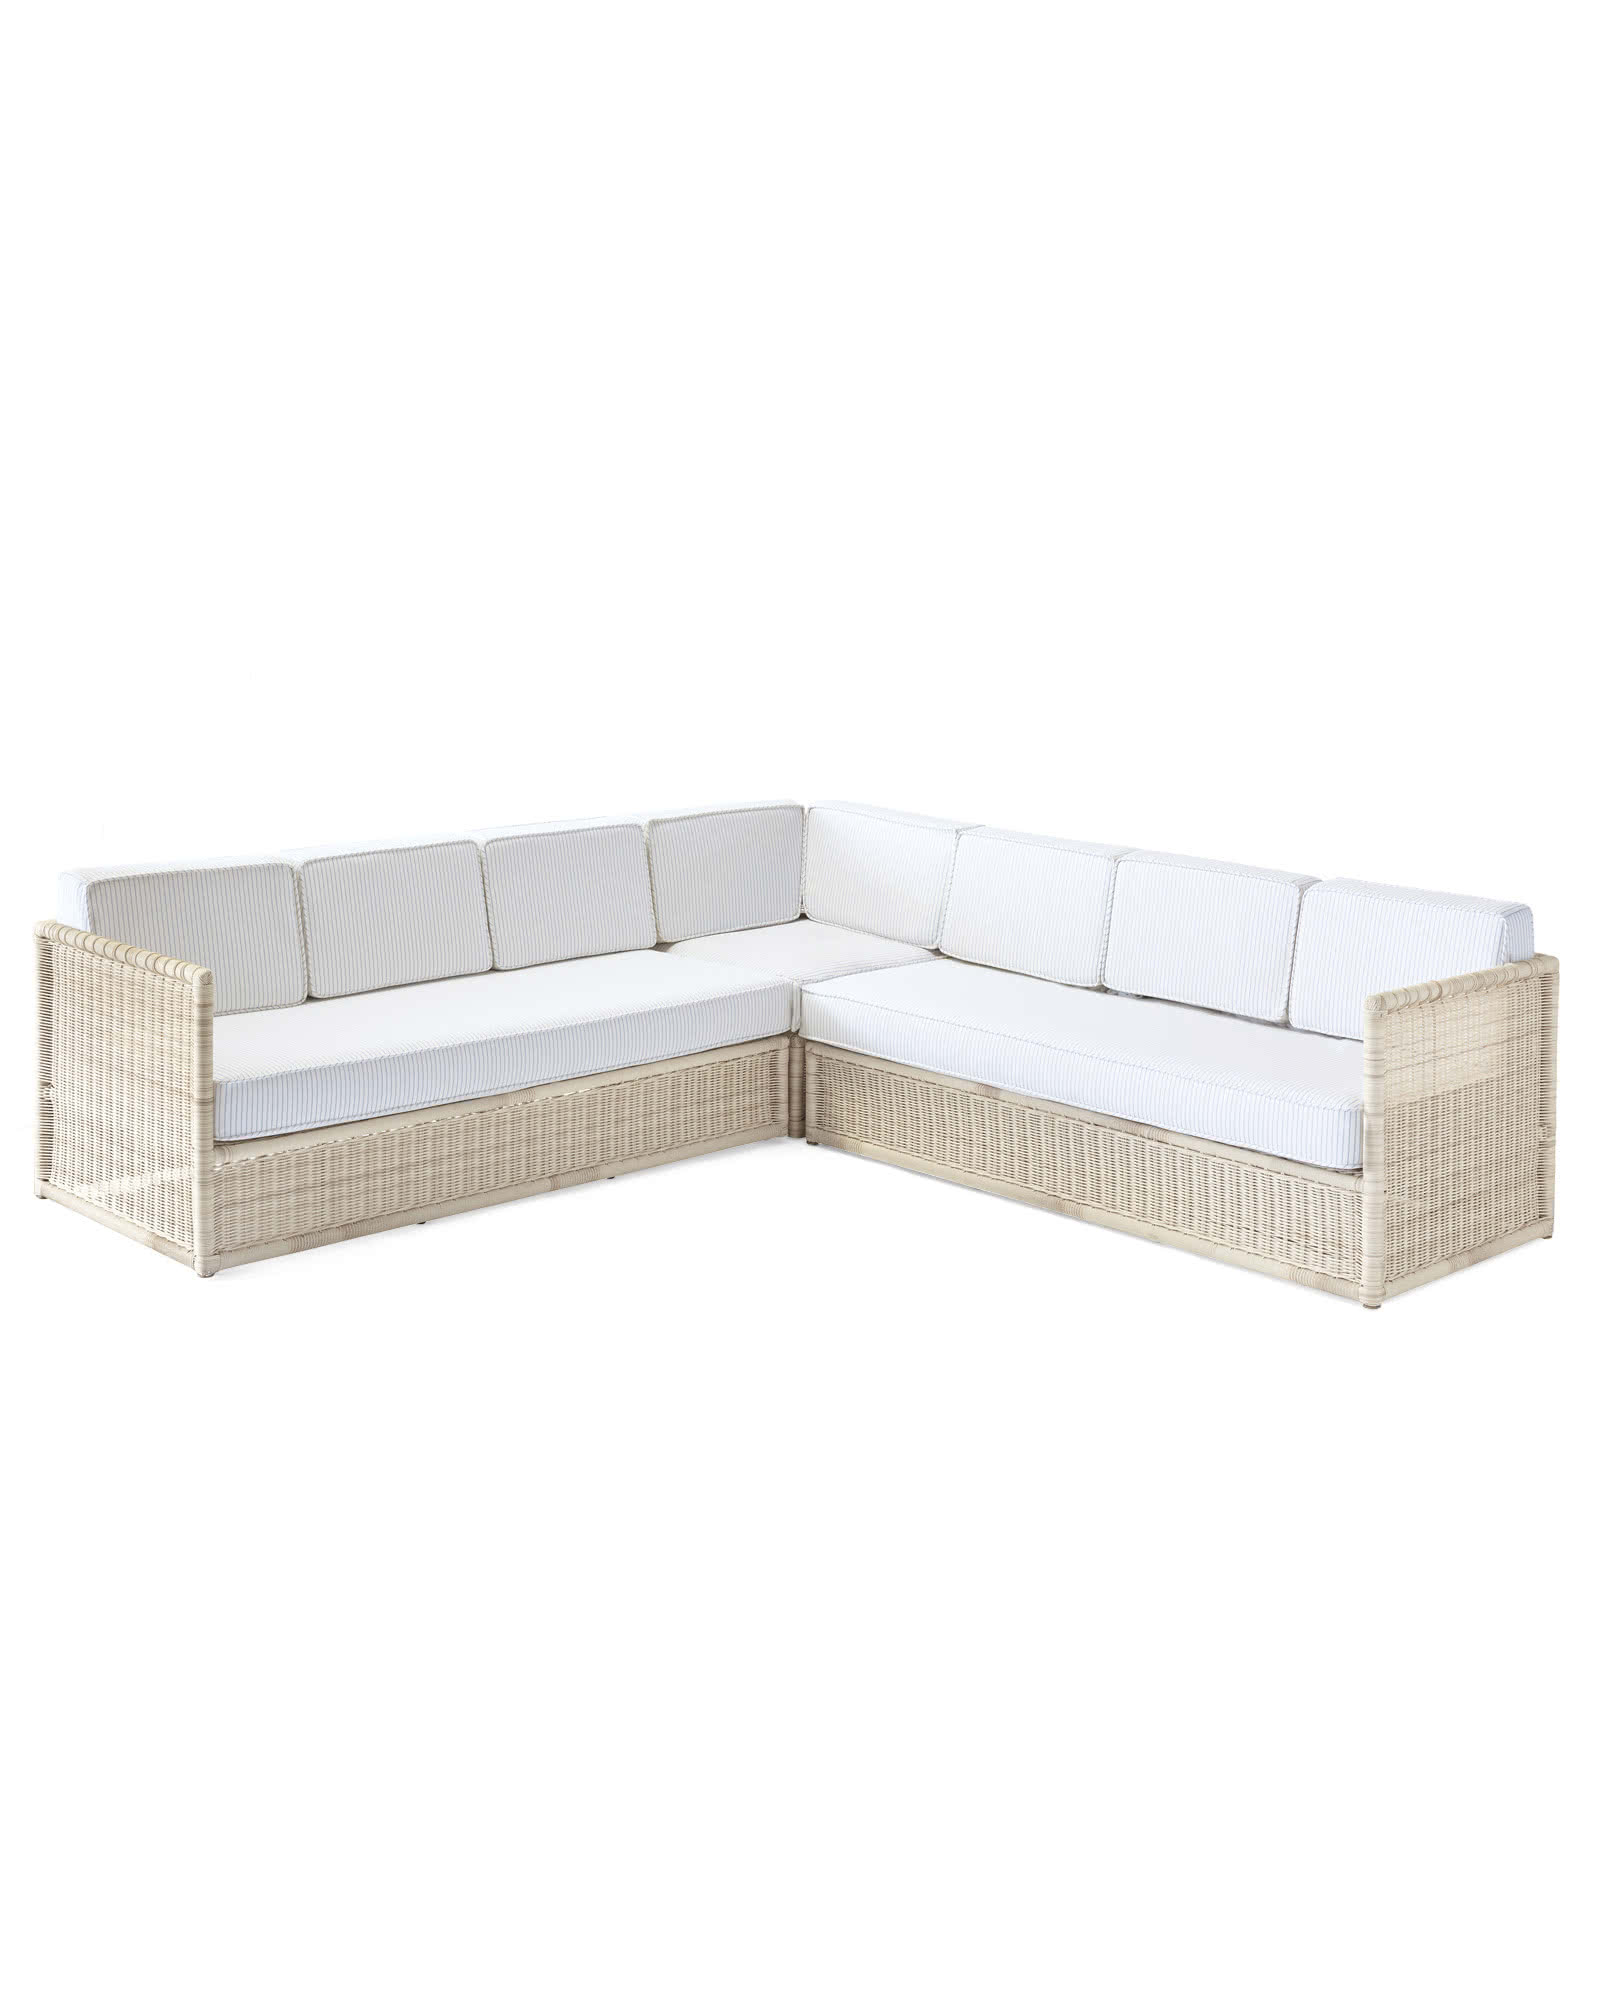 Pacifica Corner Sectional Driftwood Serena & Lily